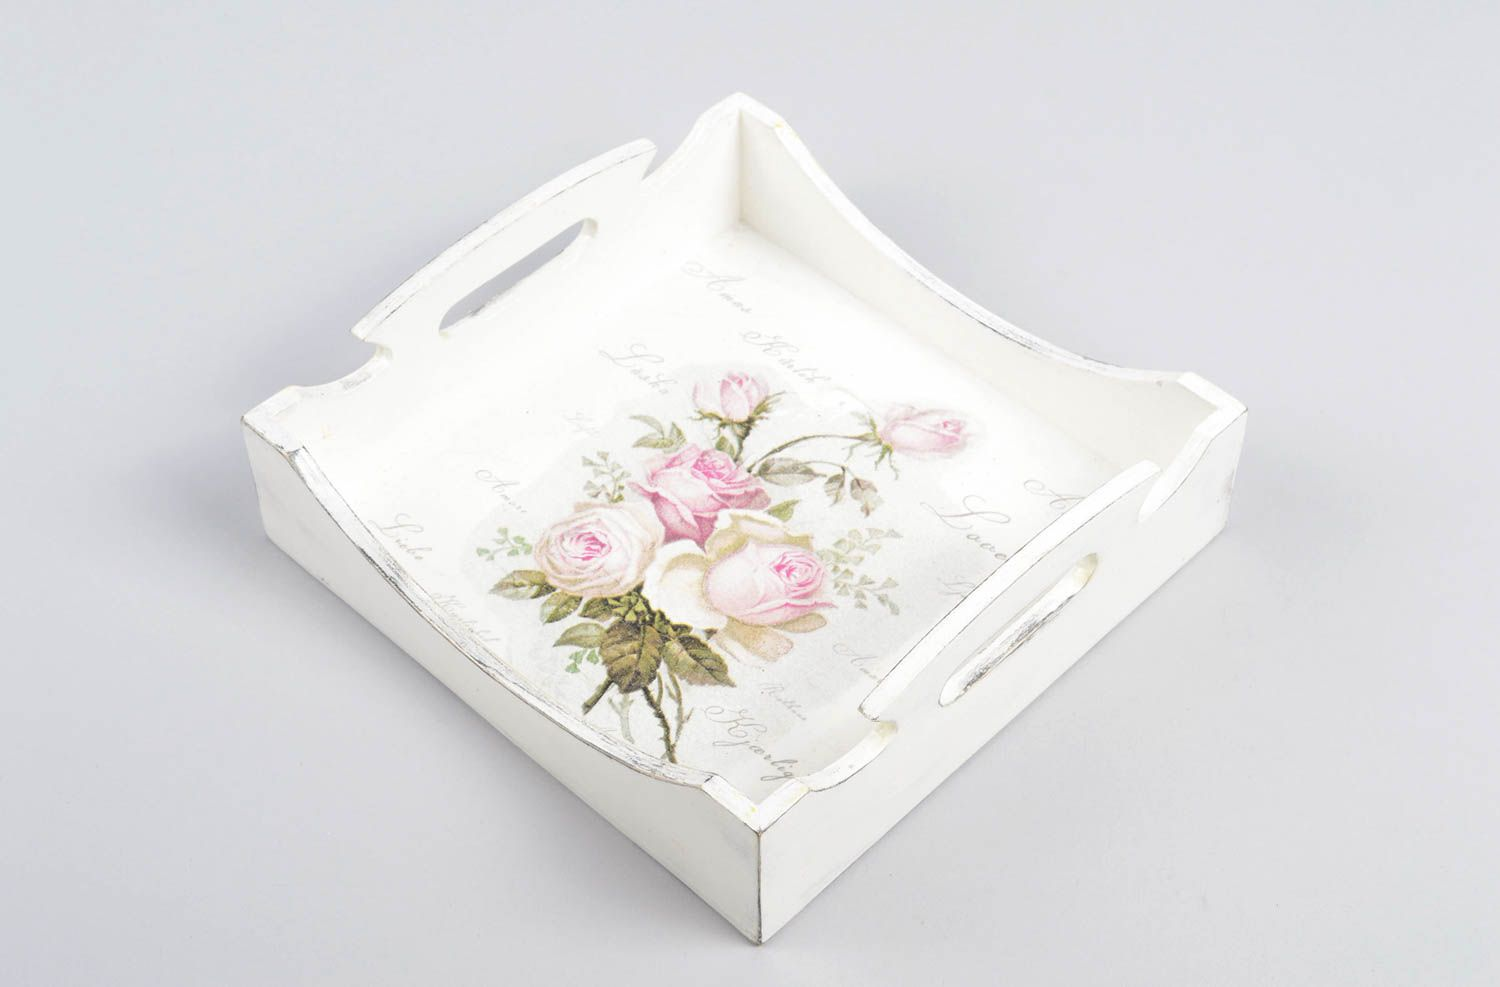 Beautiful handmade wooden tray decoupage ideas sold by WarmHomeGoods